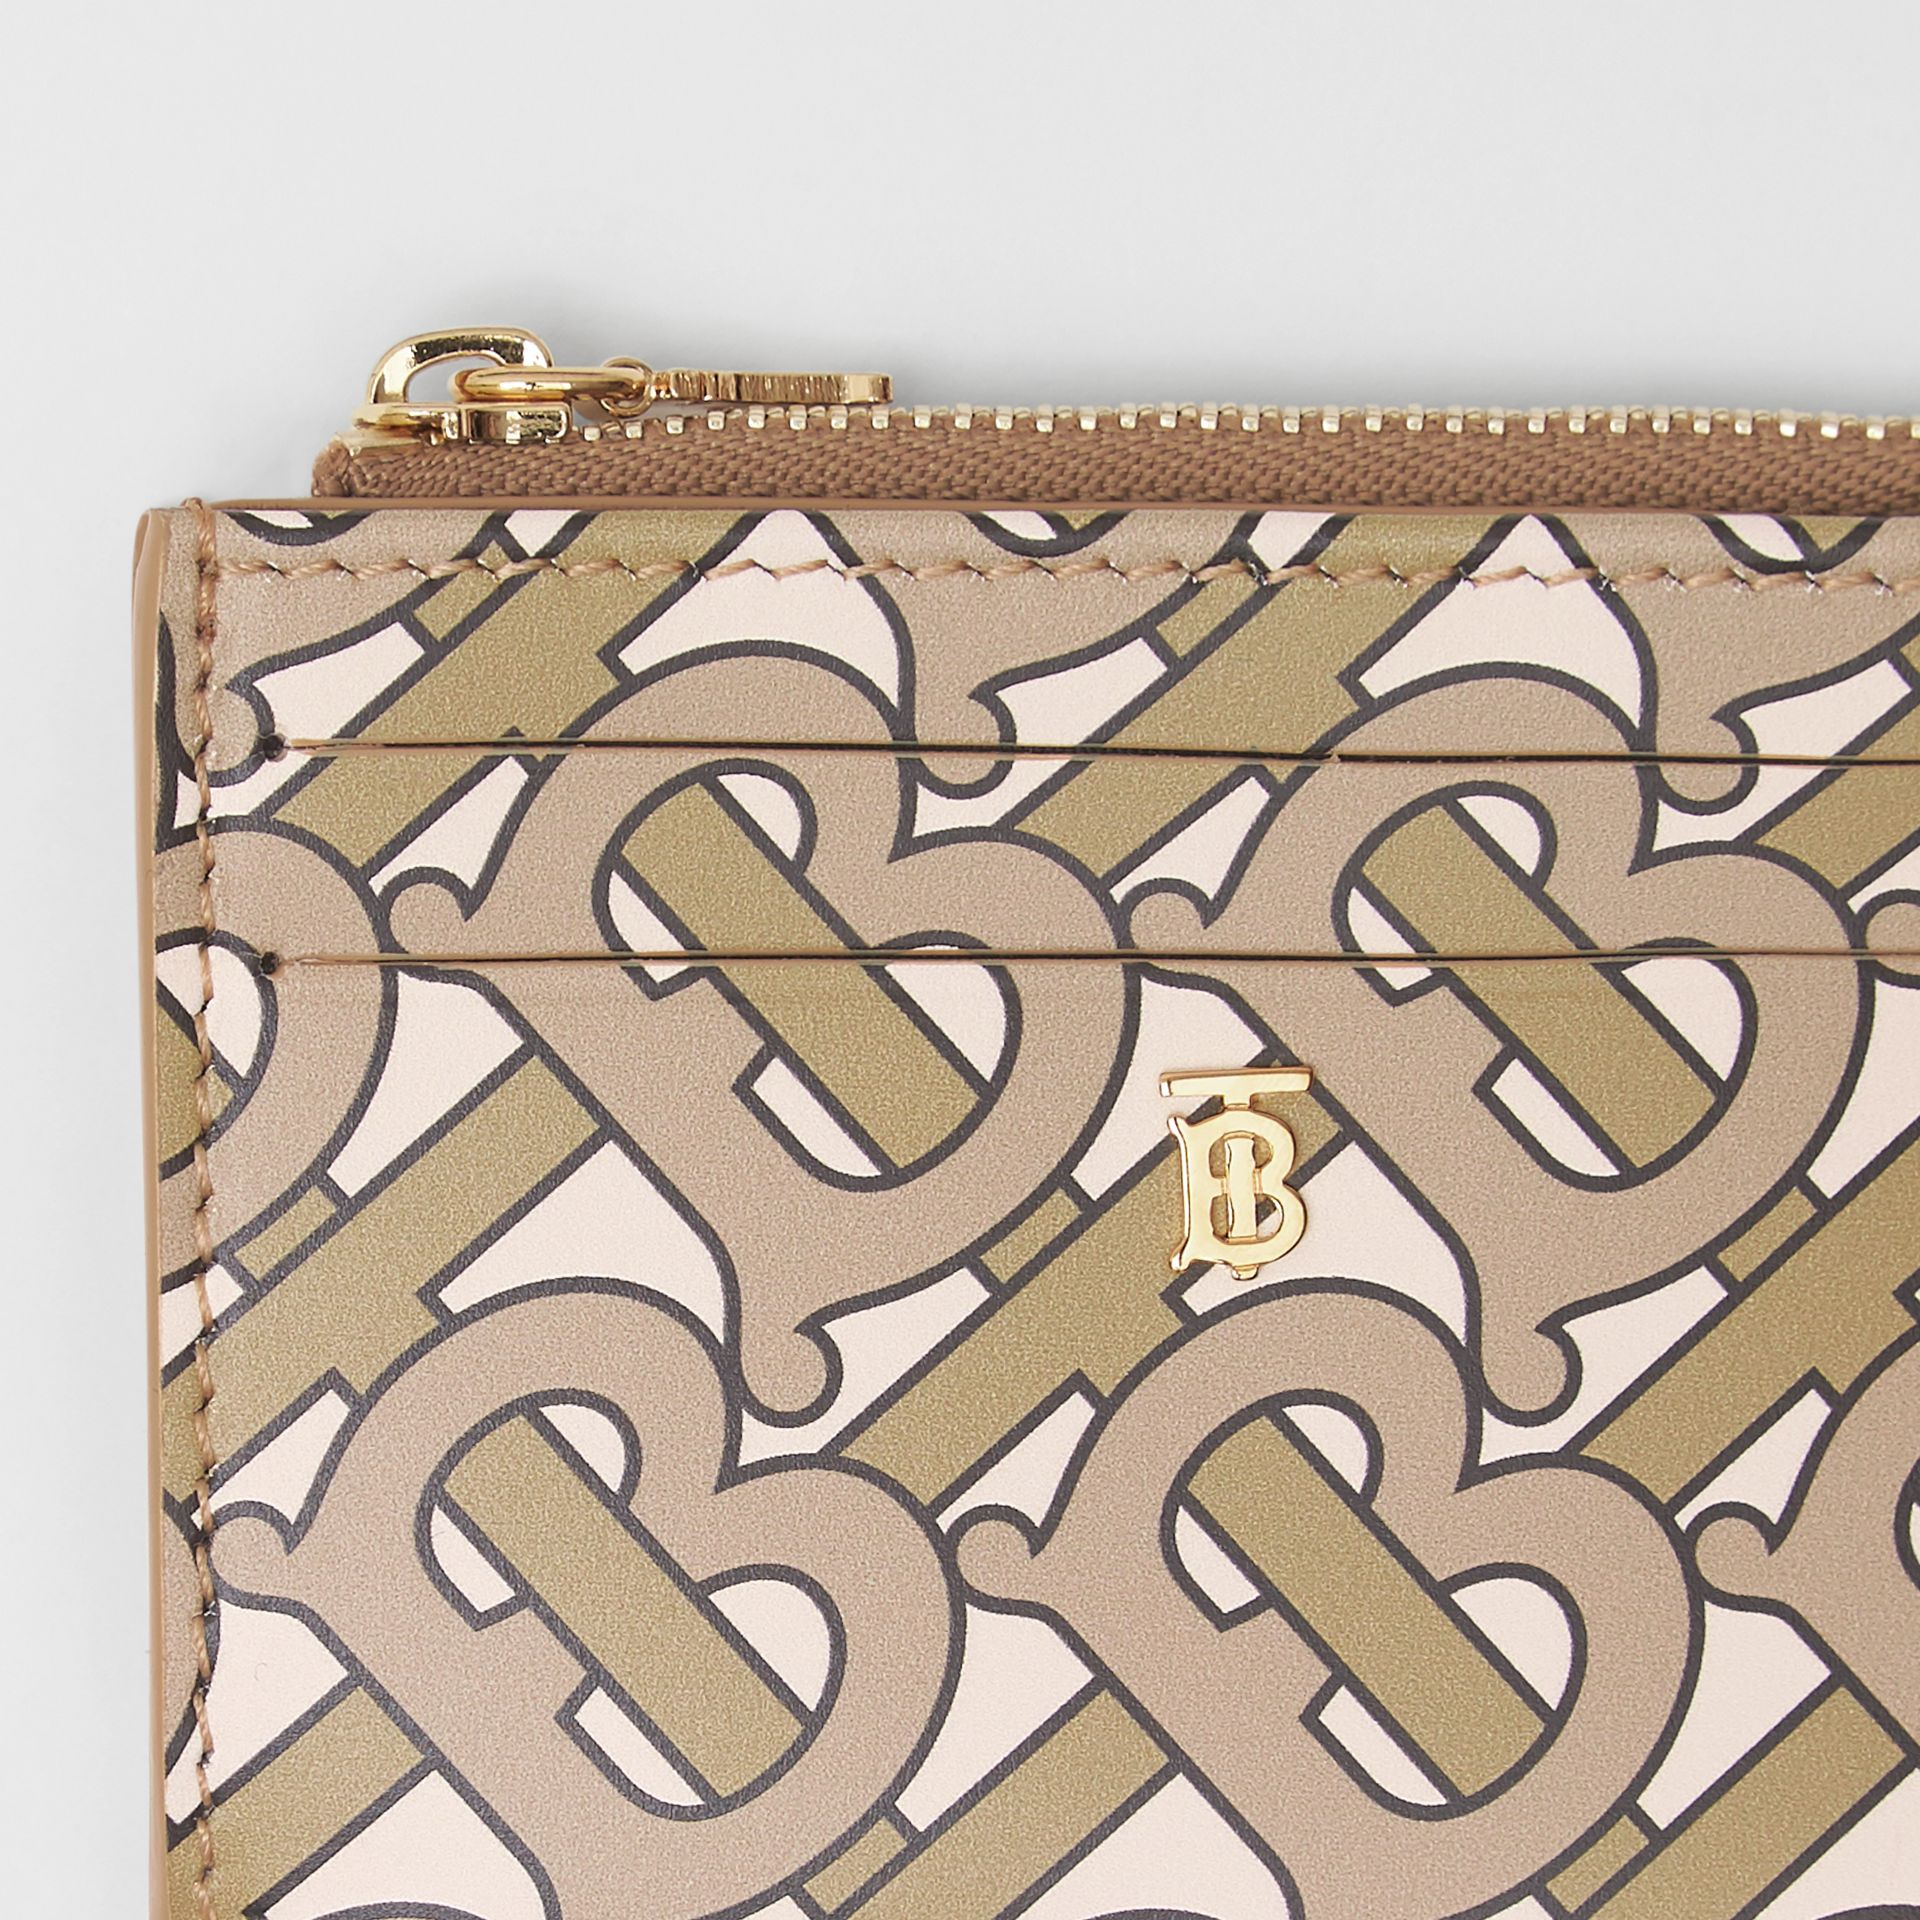 Monogram Print Leather Zip Card Case in Beige - Women | Burberry Singapore - gallery image 1